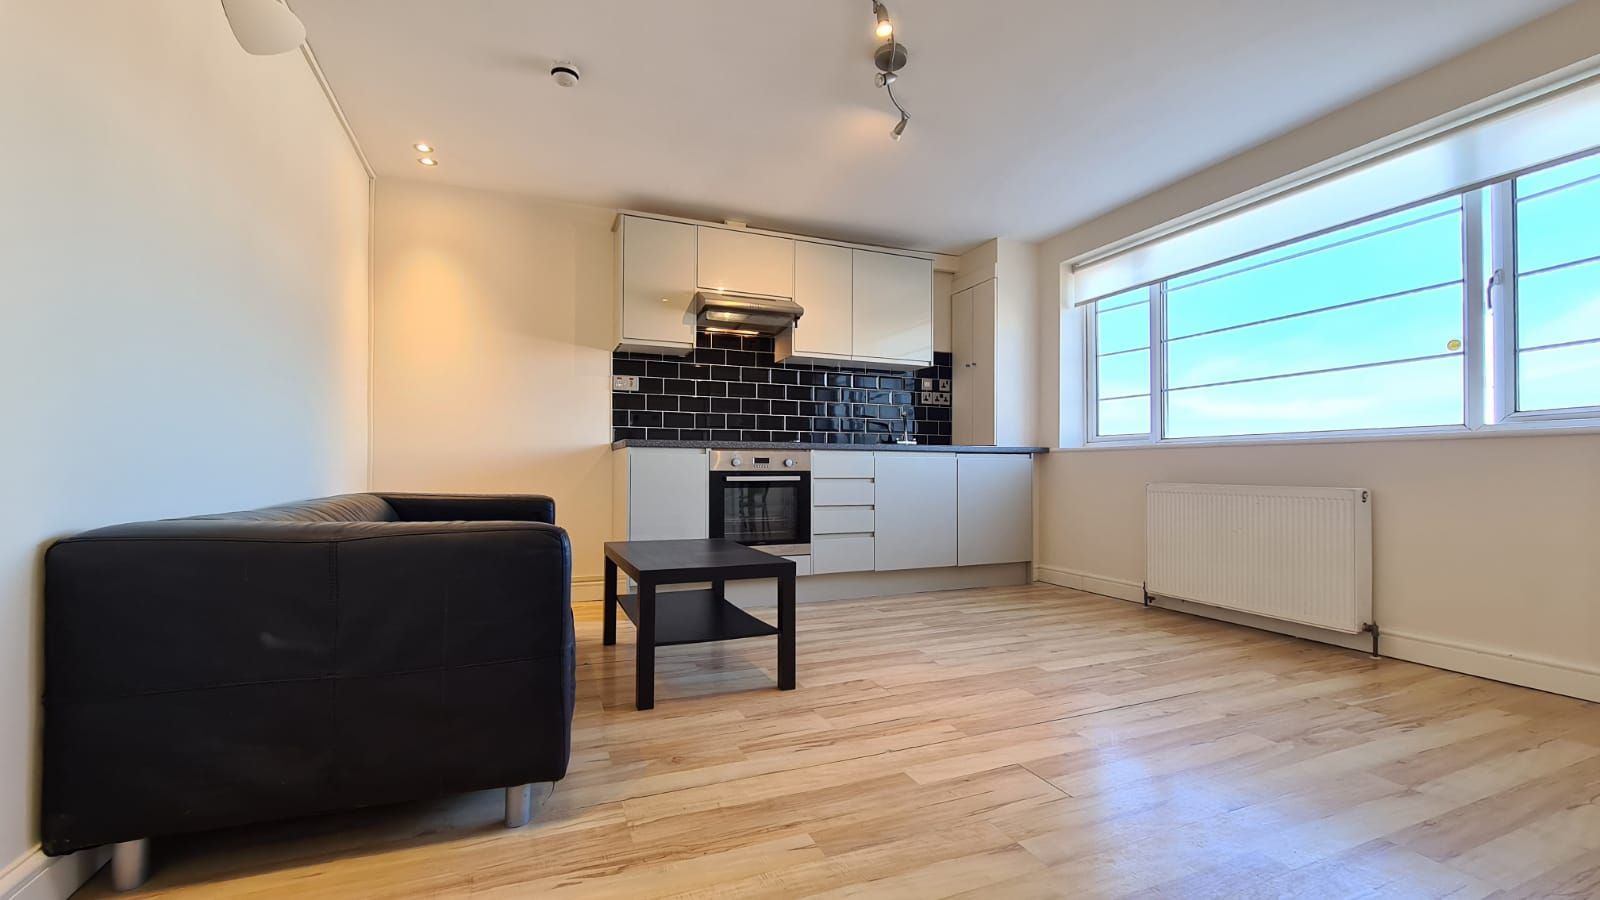 1 bedroom flat flat/apartment To Let in Wembley - Living Room/Kitchen area